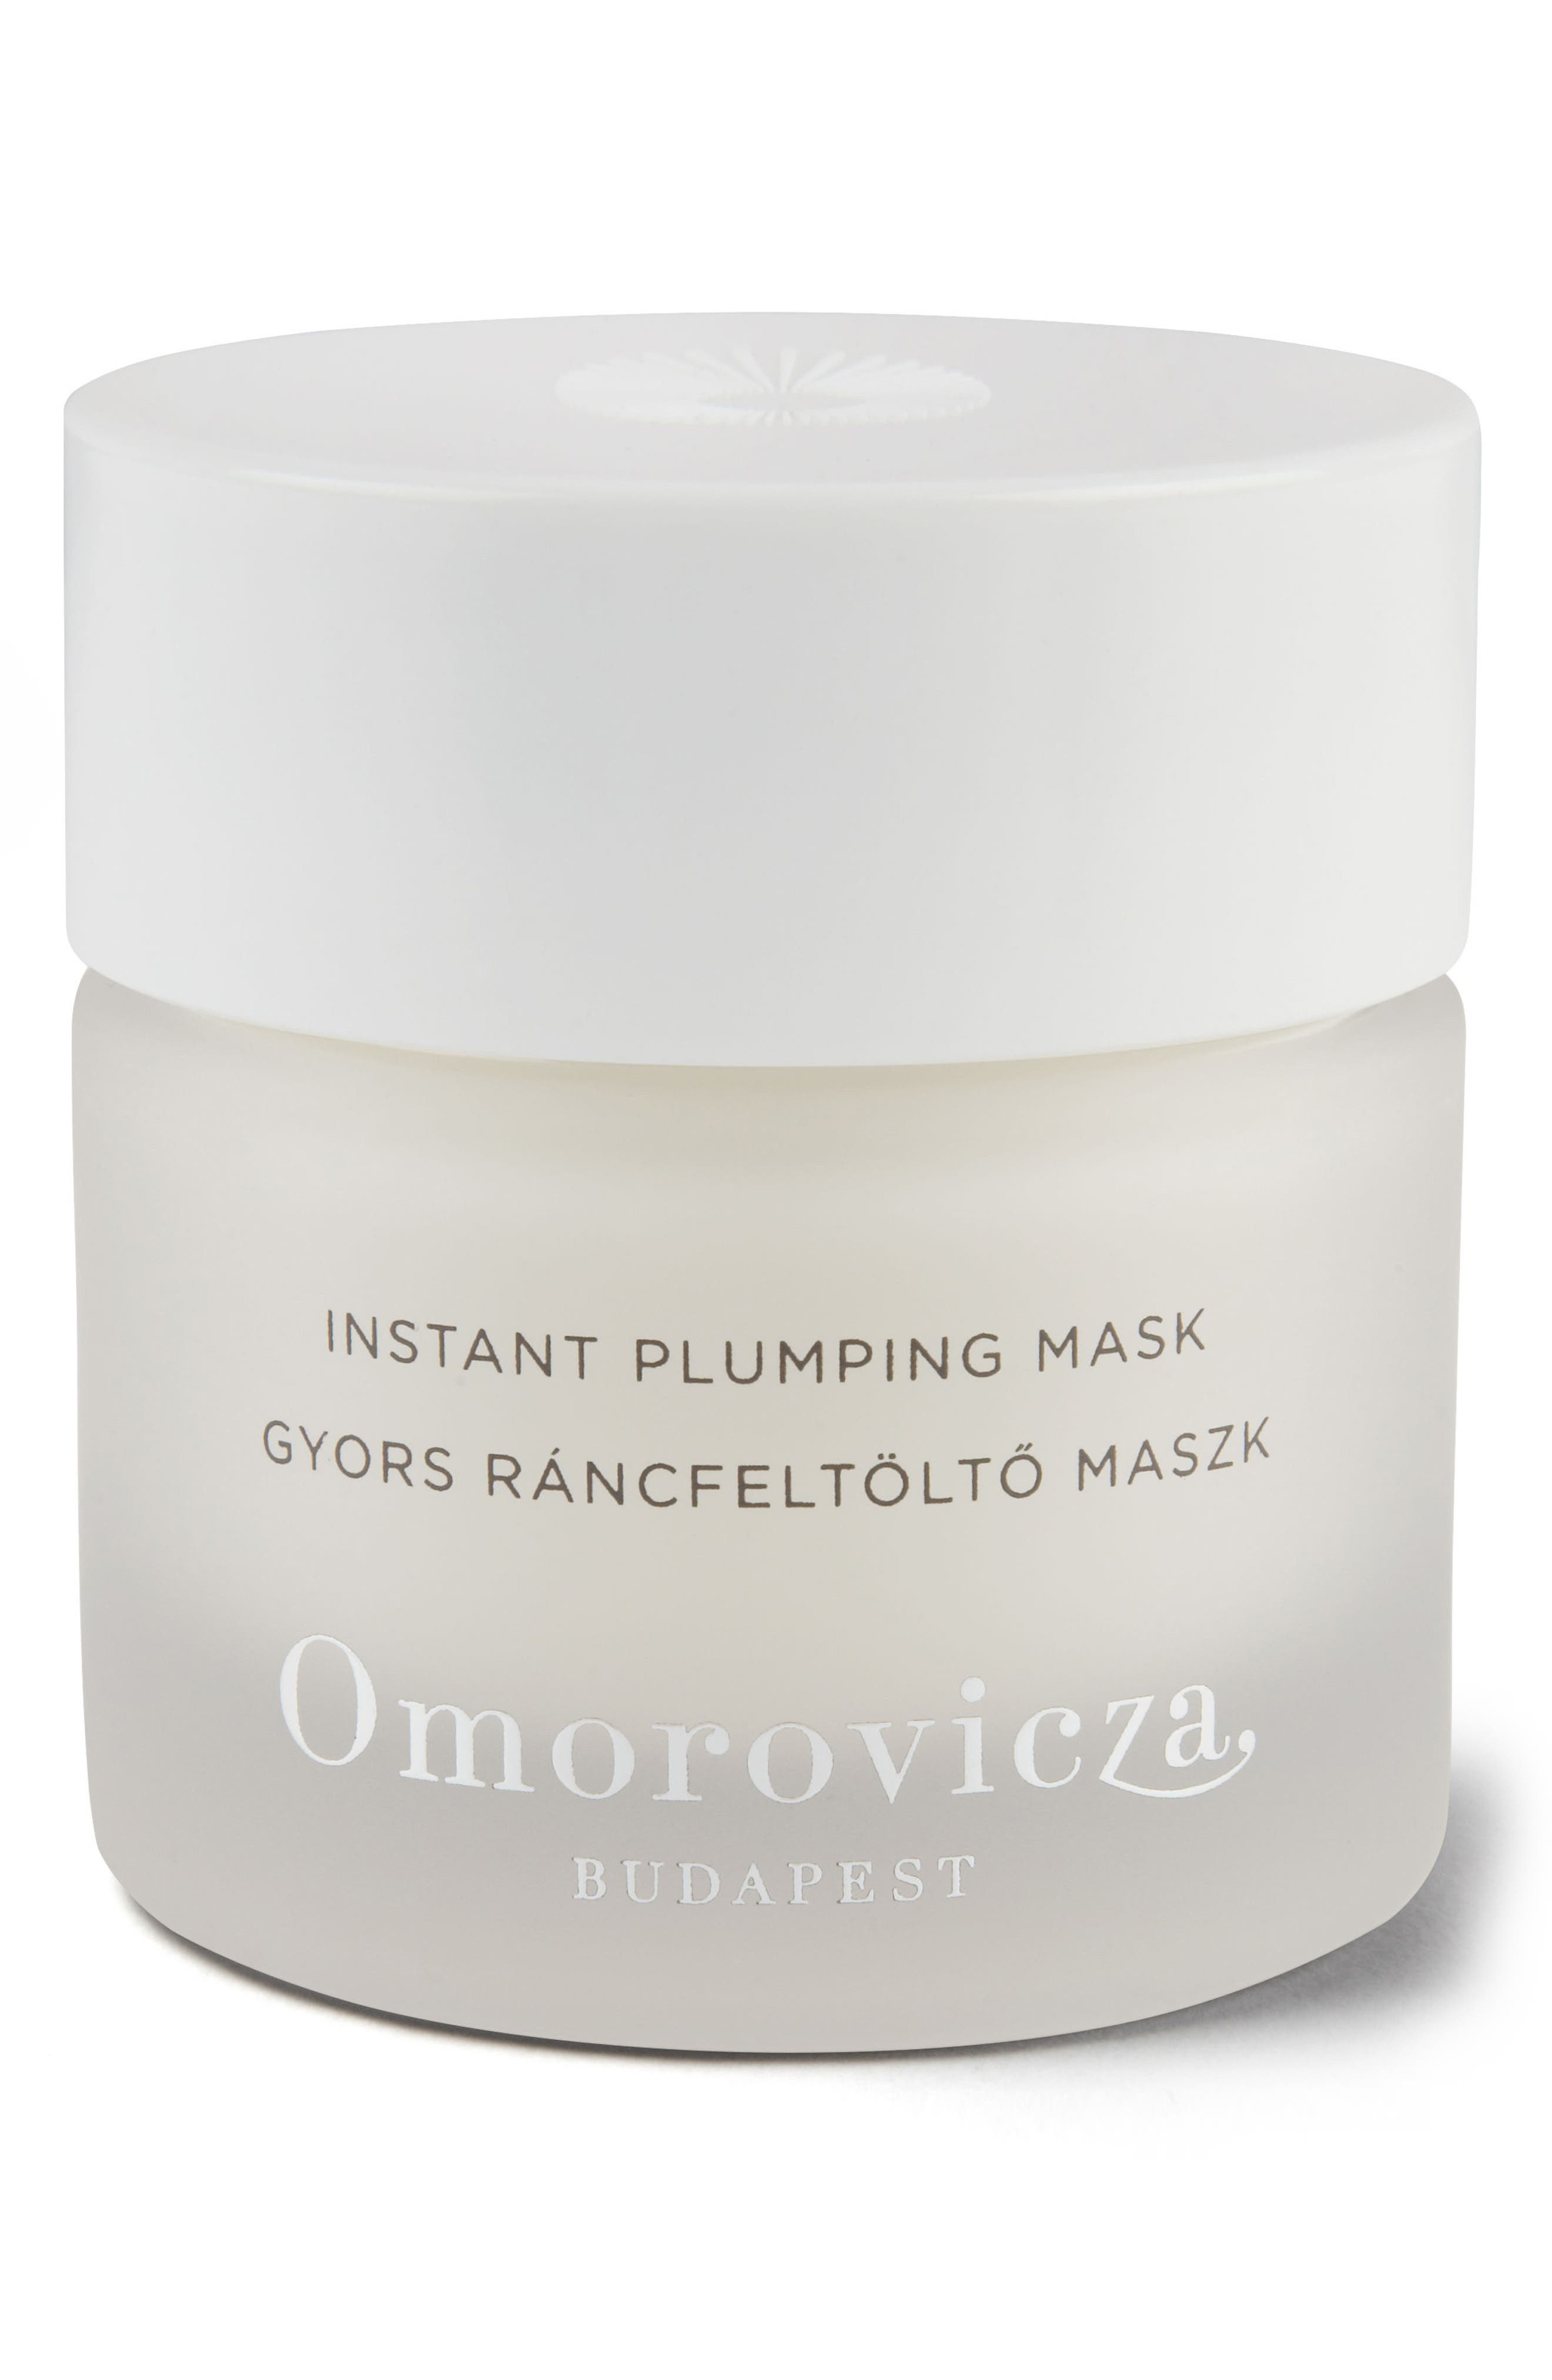 Instant Plumping Mask,                             Main thumbnail 1, color,                             No Color